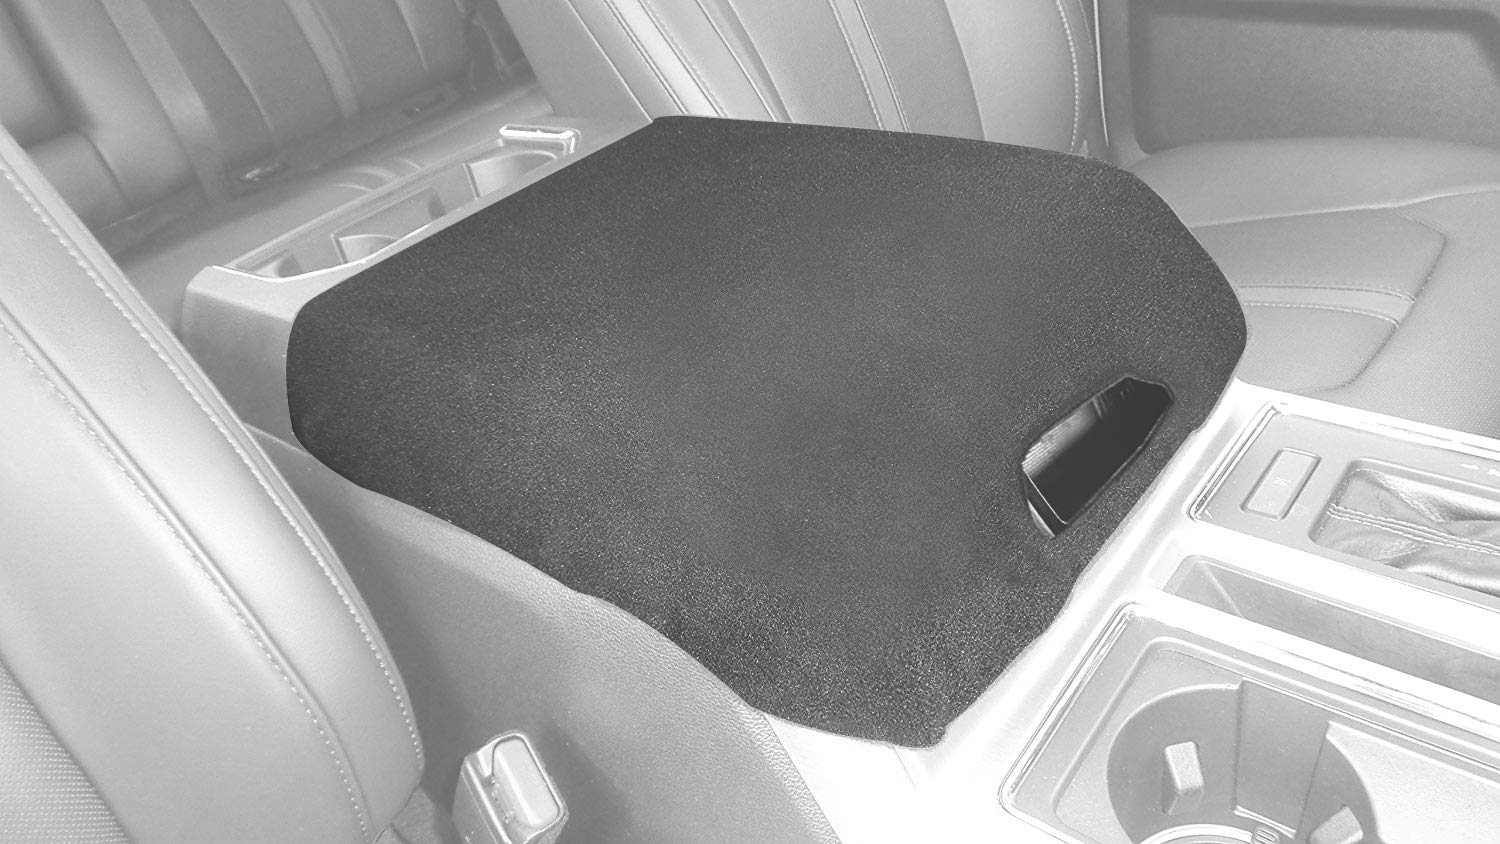 AVOMAR Black Center Console Armrest Cover with Latch Opening Soft Pad Protector Cover Fits Ford F150 F250 Truck Series 2010-2018